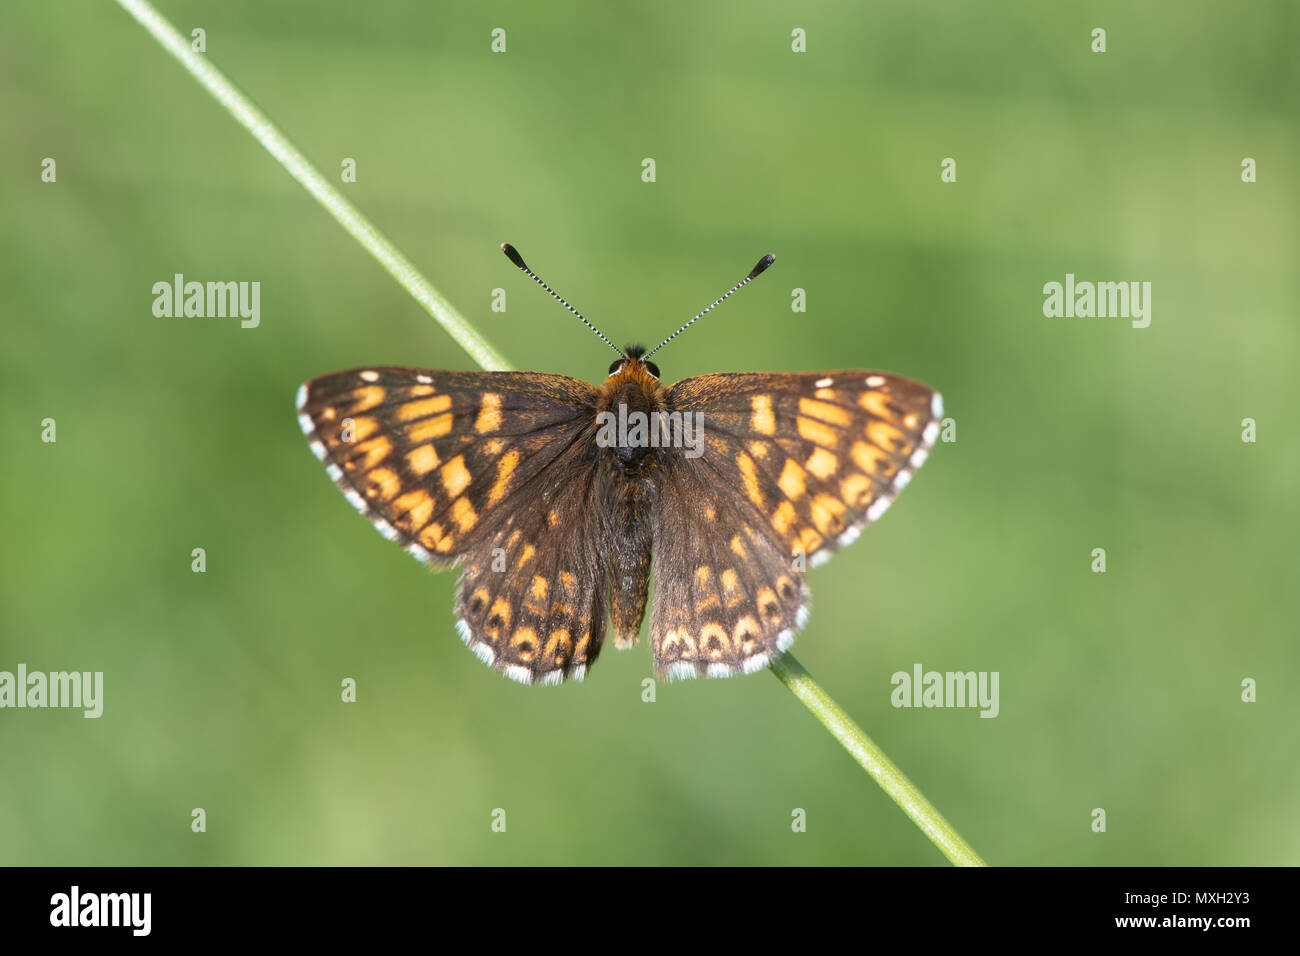 Duke of Burgundy fritillary butterfly (Hamearis lucina) from above. Upperwings of male insect in the family Riodinidae, perched on grass basking - Stock Image